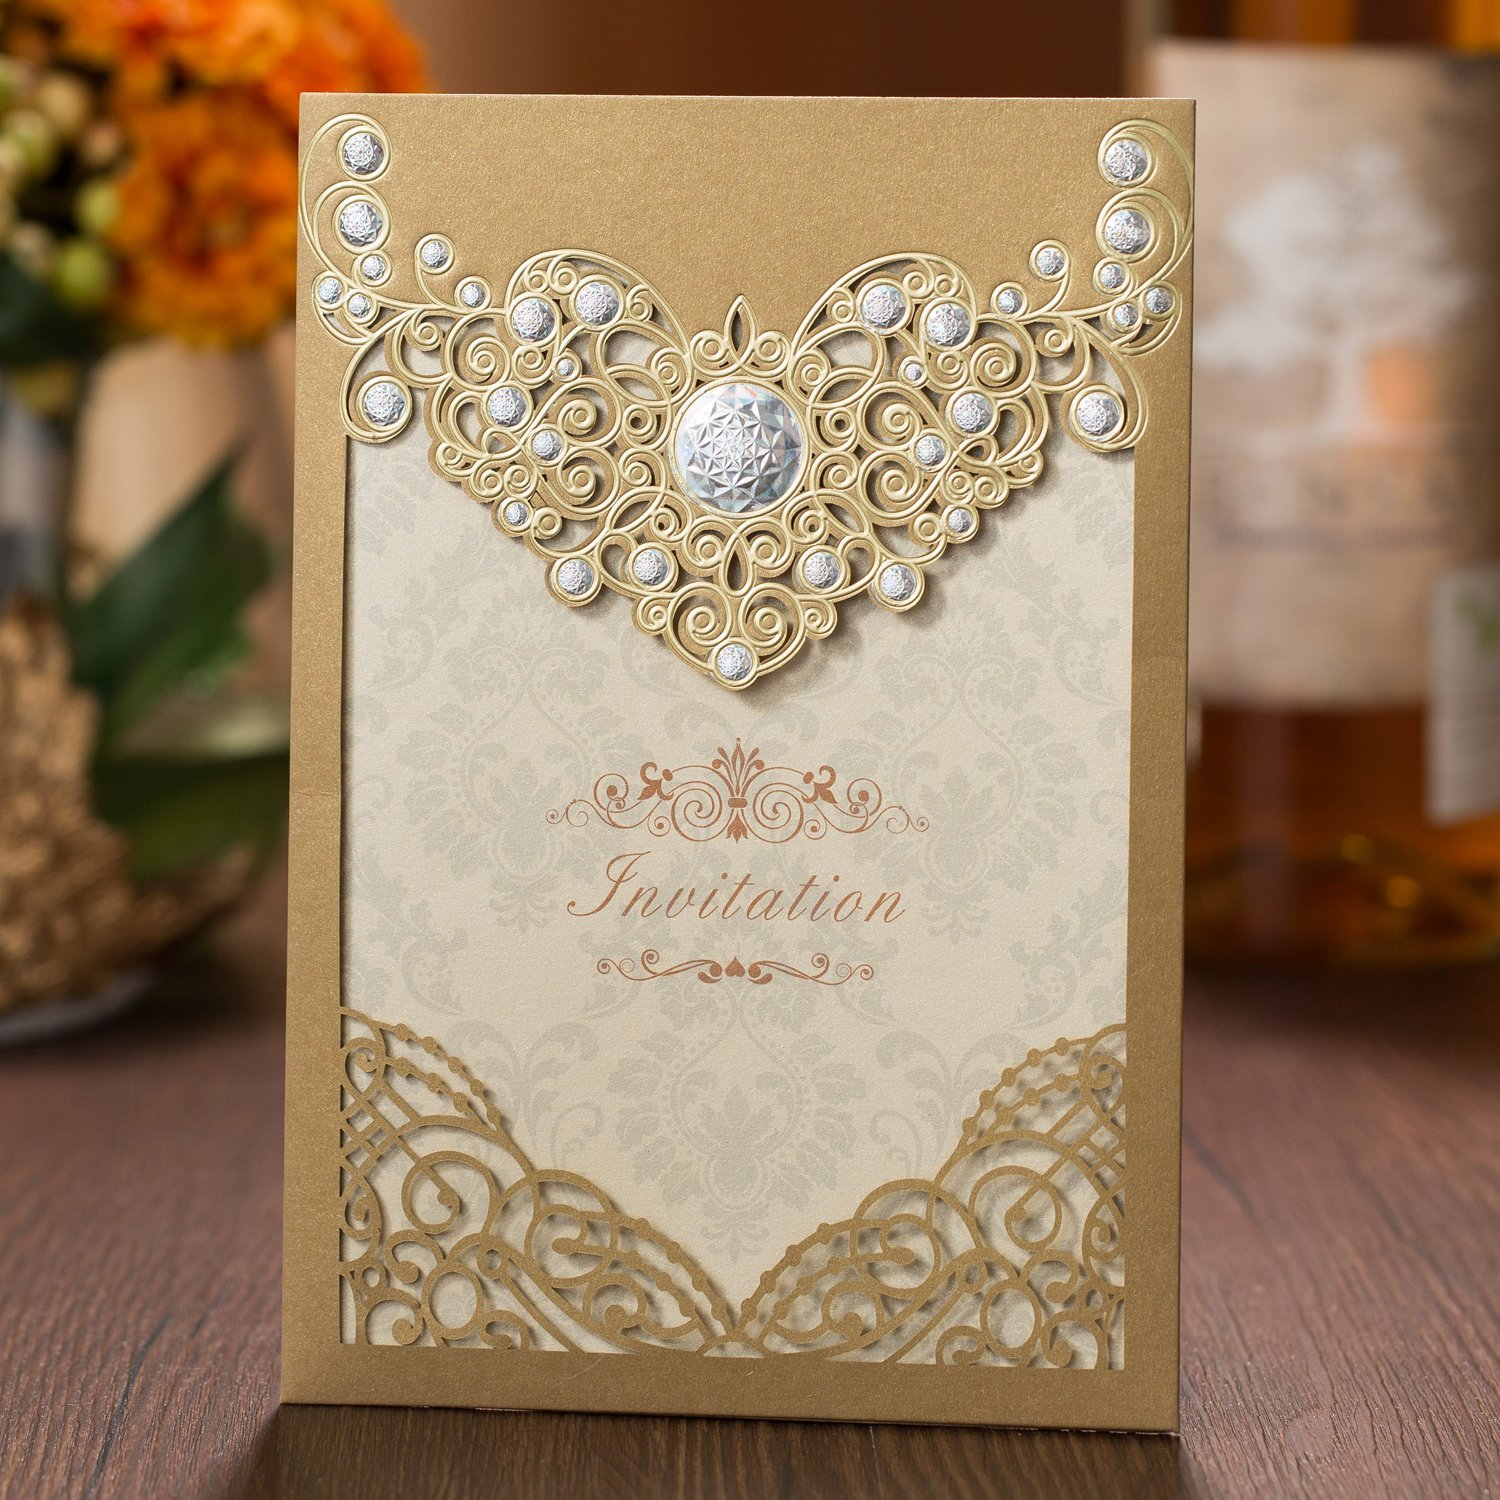 Get Quotations 50PCS Laser Cut Bronzing Wedding Invitation Cards Hollow Favors Cardstock For Engagement Birthday Graduation Baby